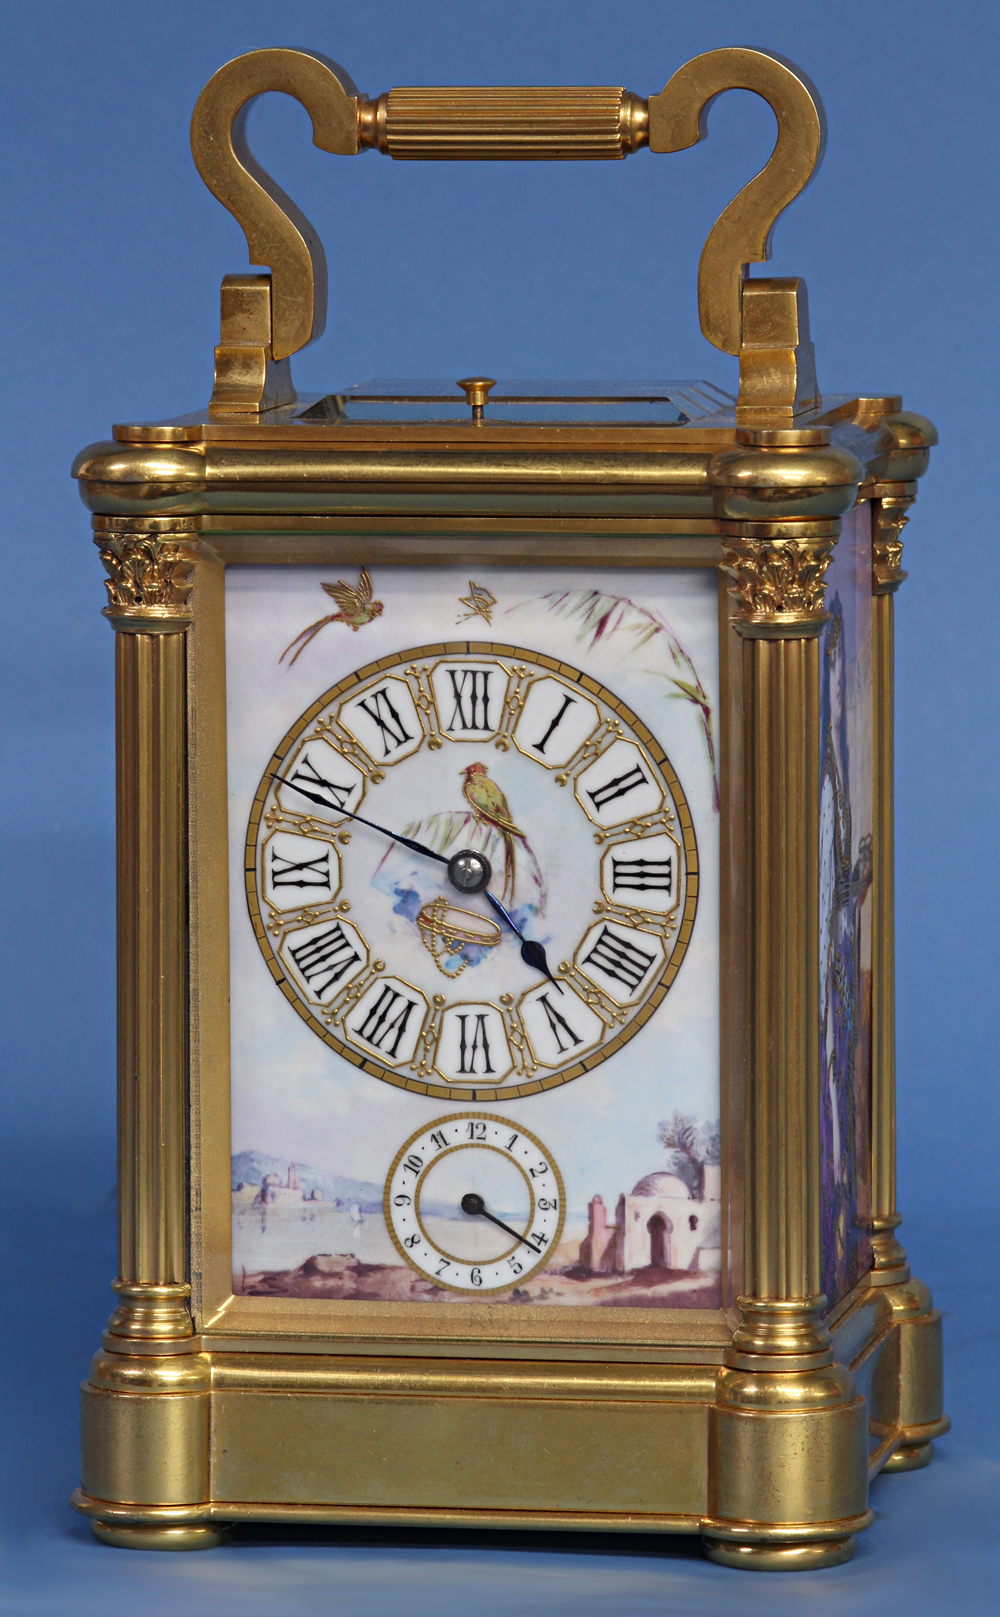 Carriage Clock with Porcelain Panels by L. Simonnet.